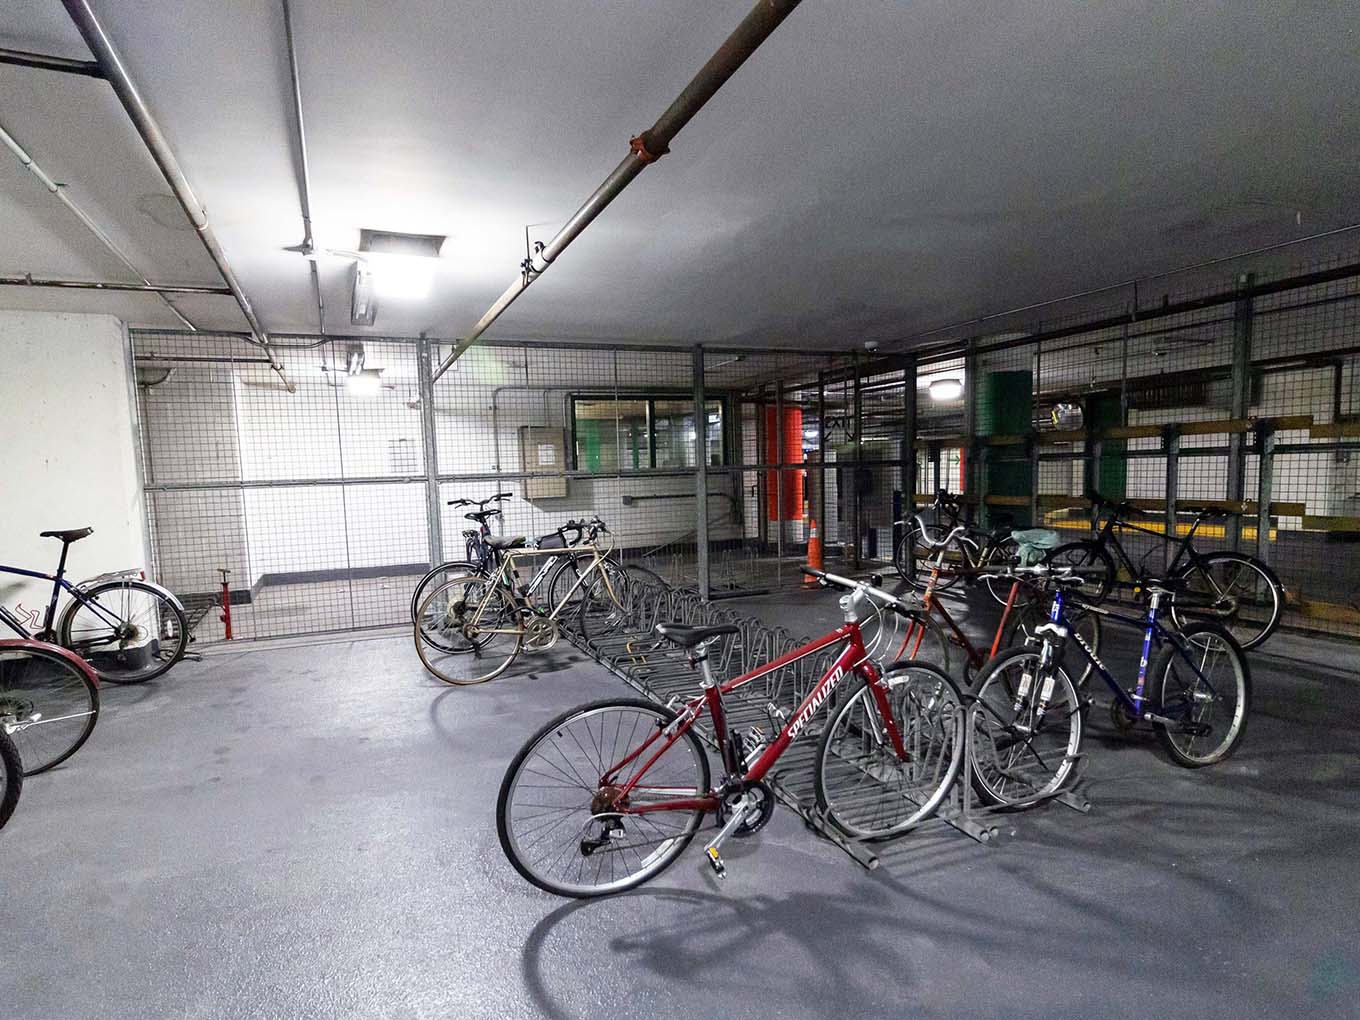 Suites and amenities - Bike cage